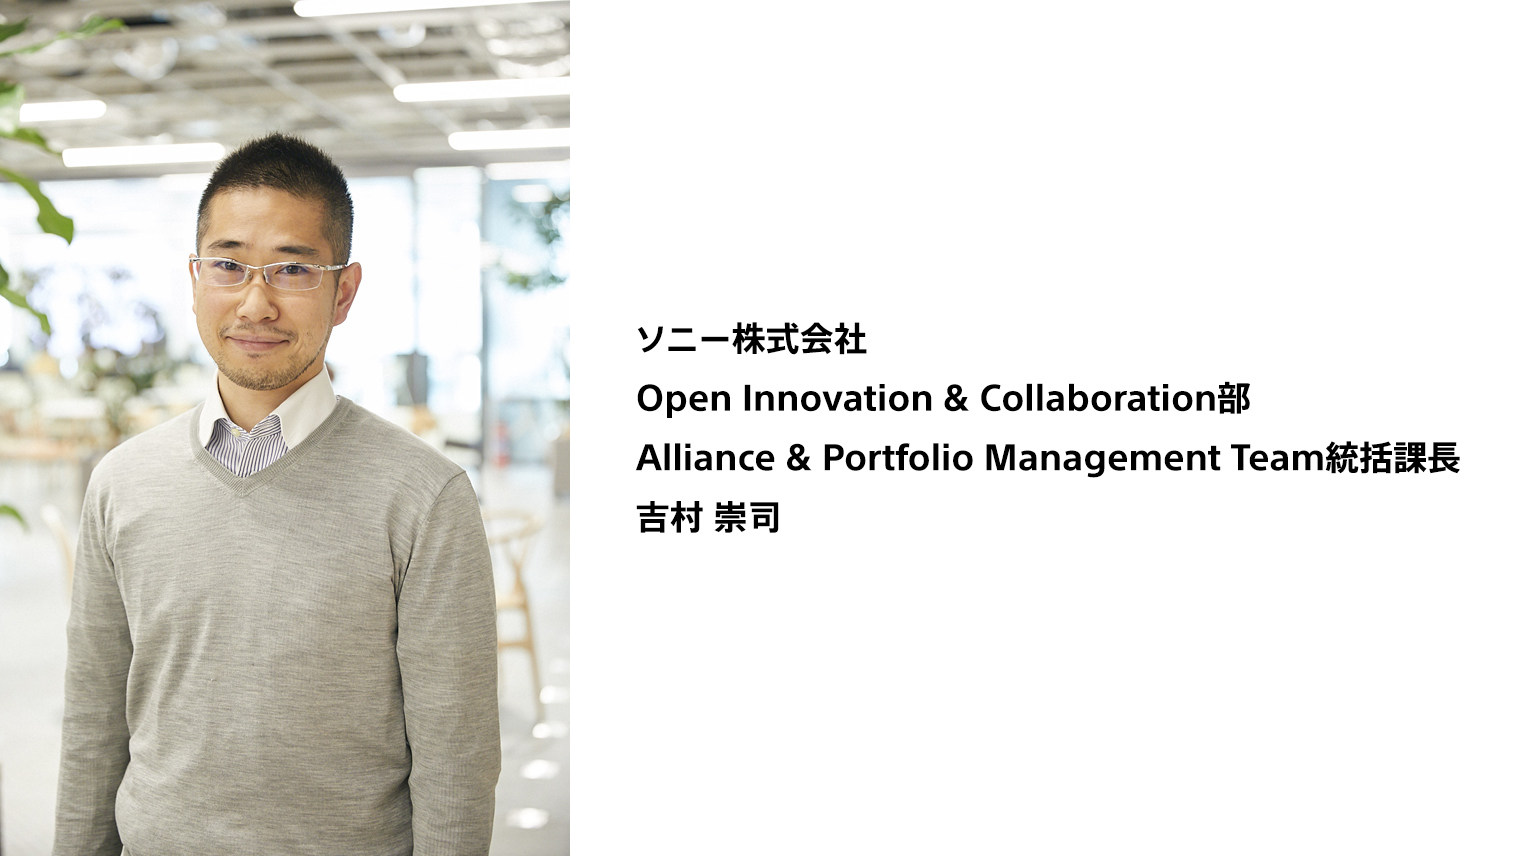 ソニー株式会社 Open Innovation & Collaboration部 Alliance & Portfolio Management Team統括課長 吉村 崇司